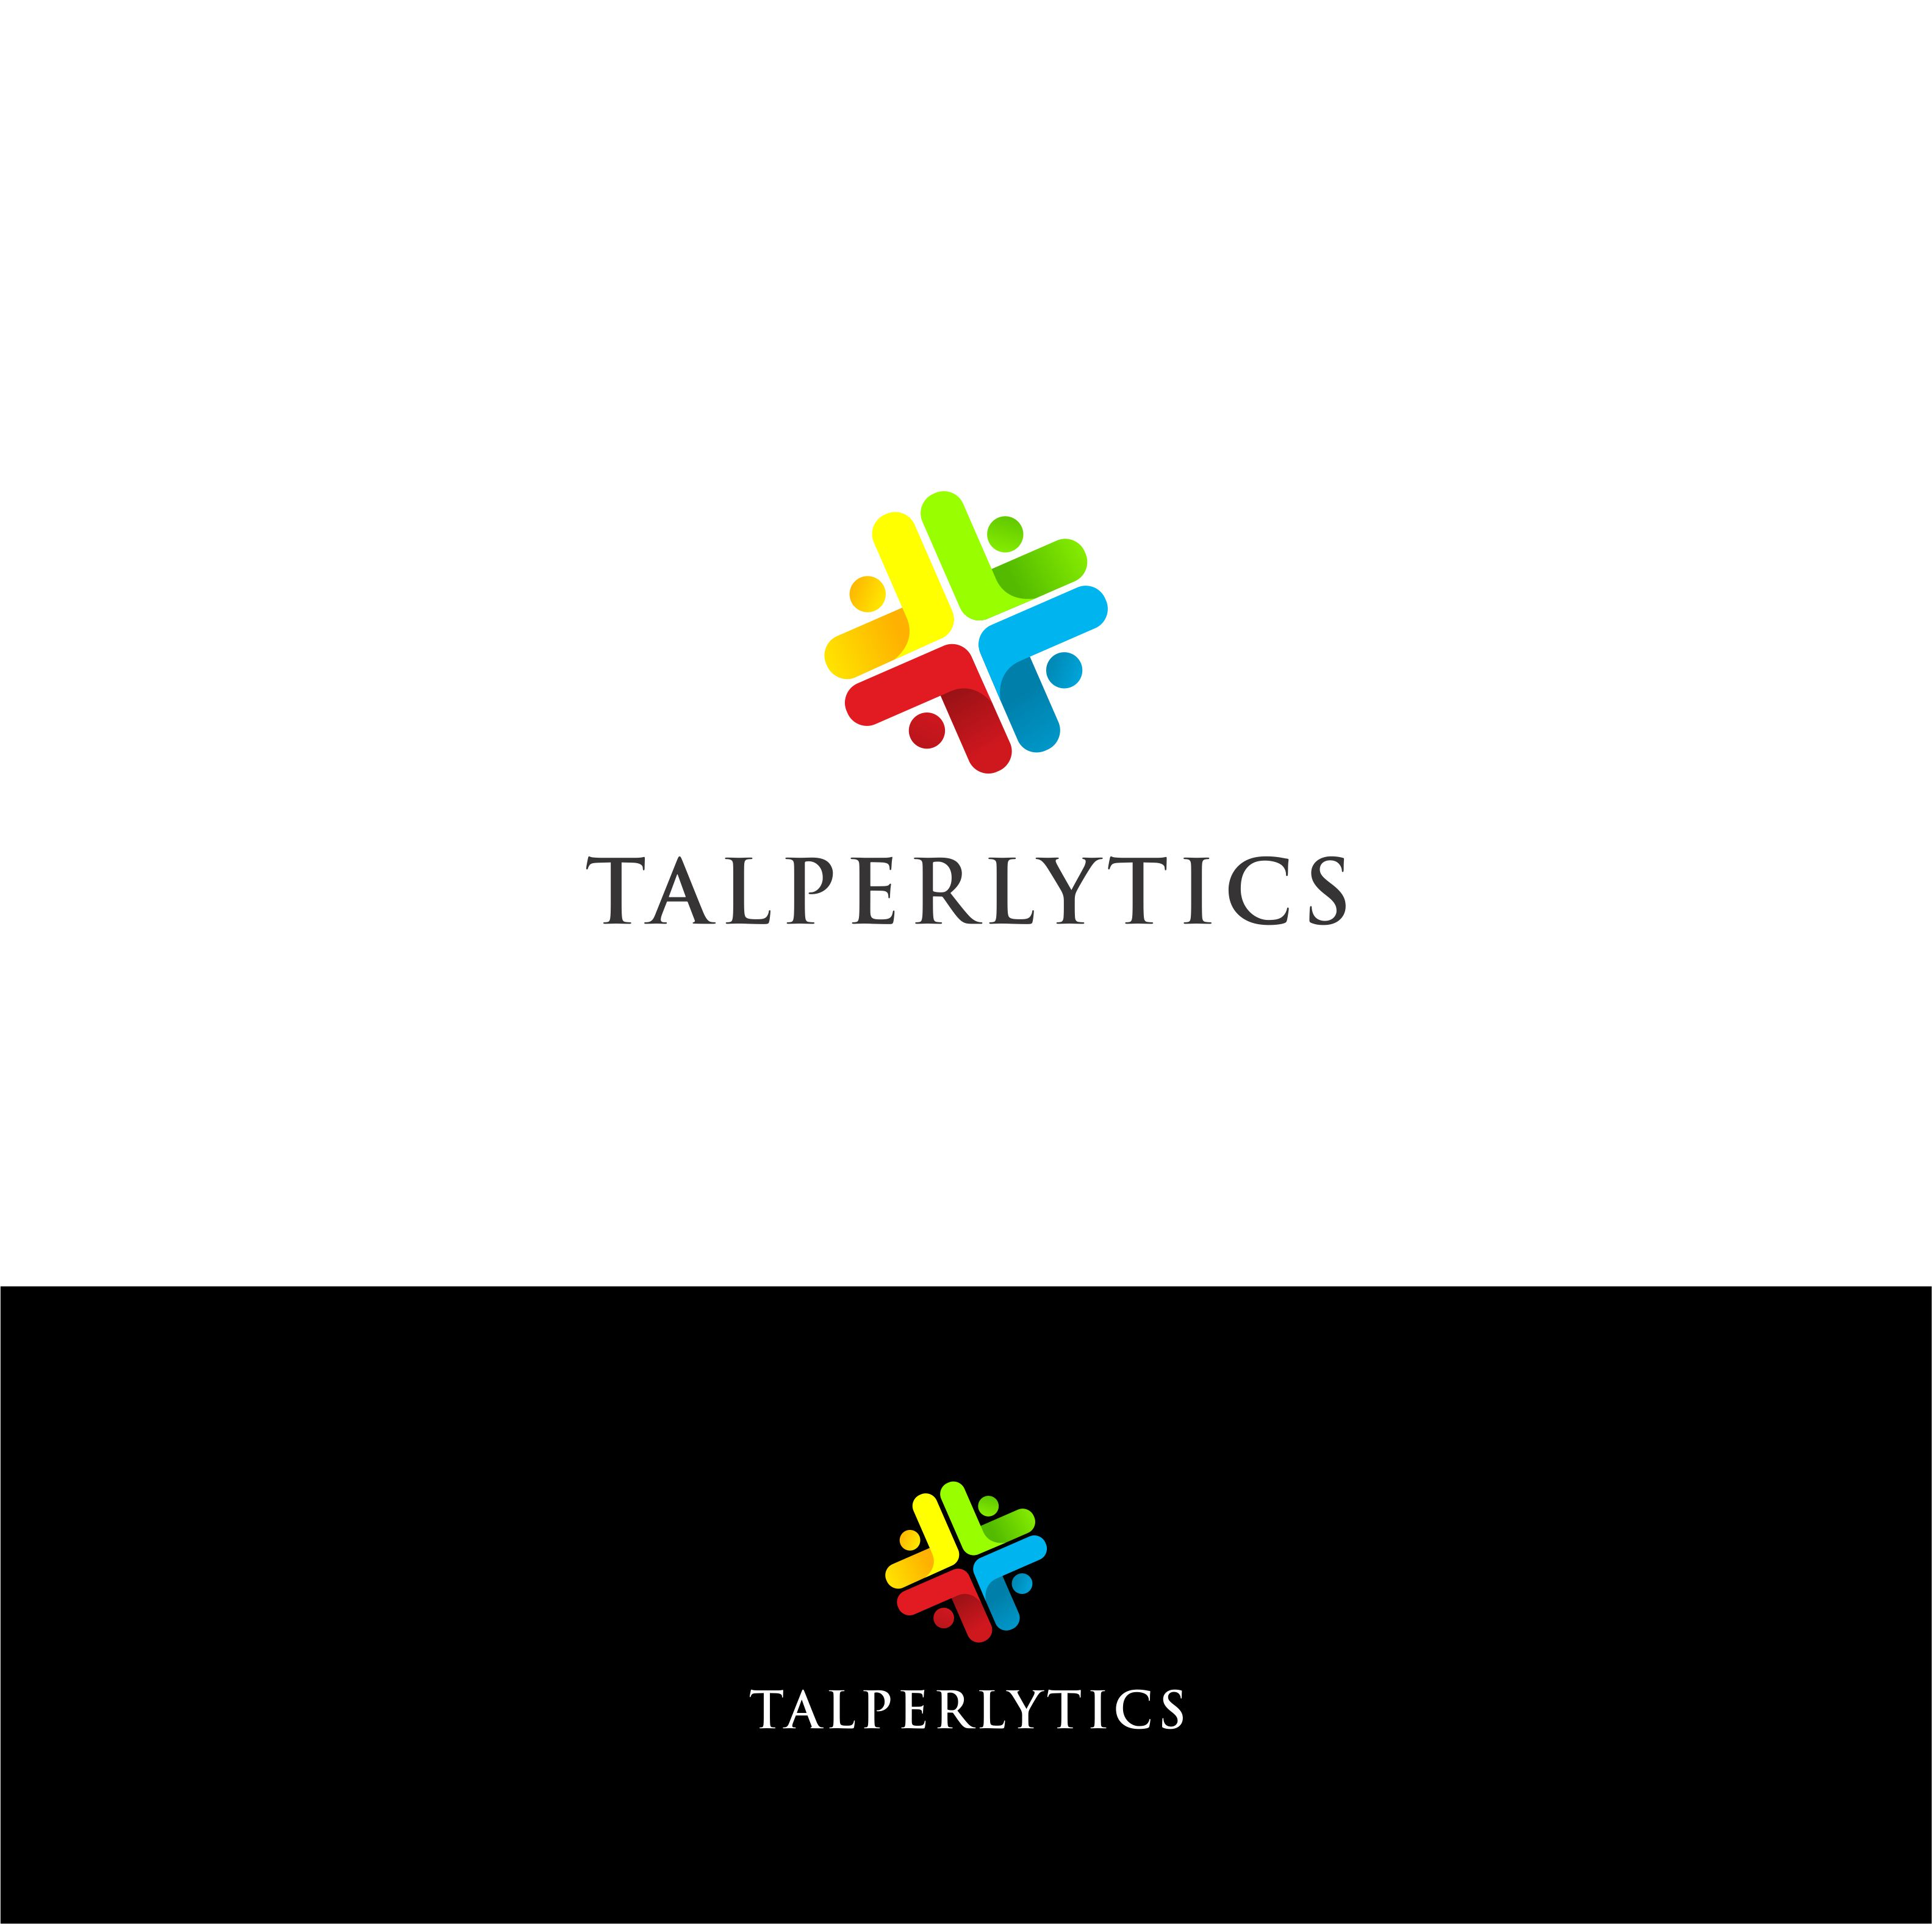 Logo Design by Raymond Garcia - Entry No. 7 in the Logo Design Contest Imaginative Logo Design for Talperlytics.